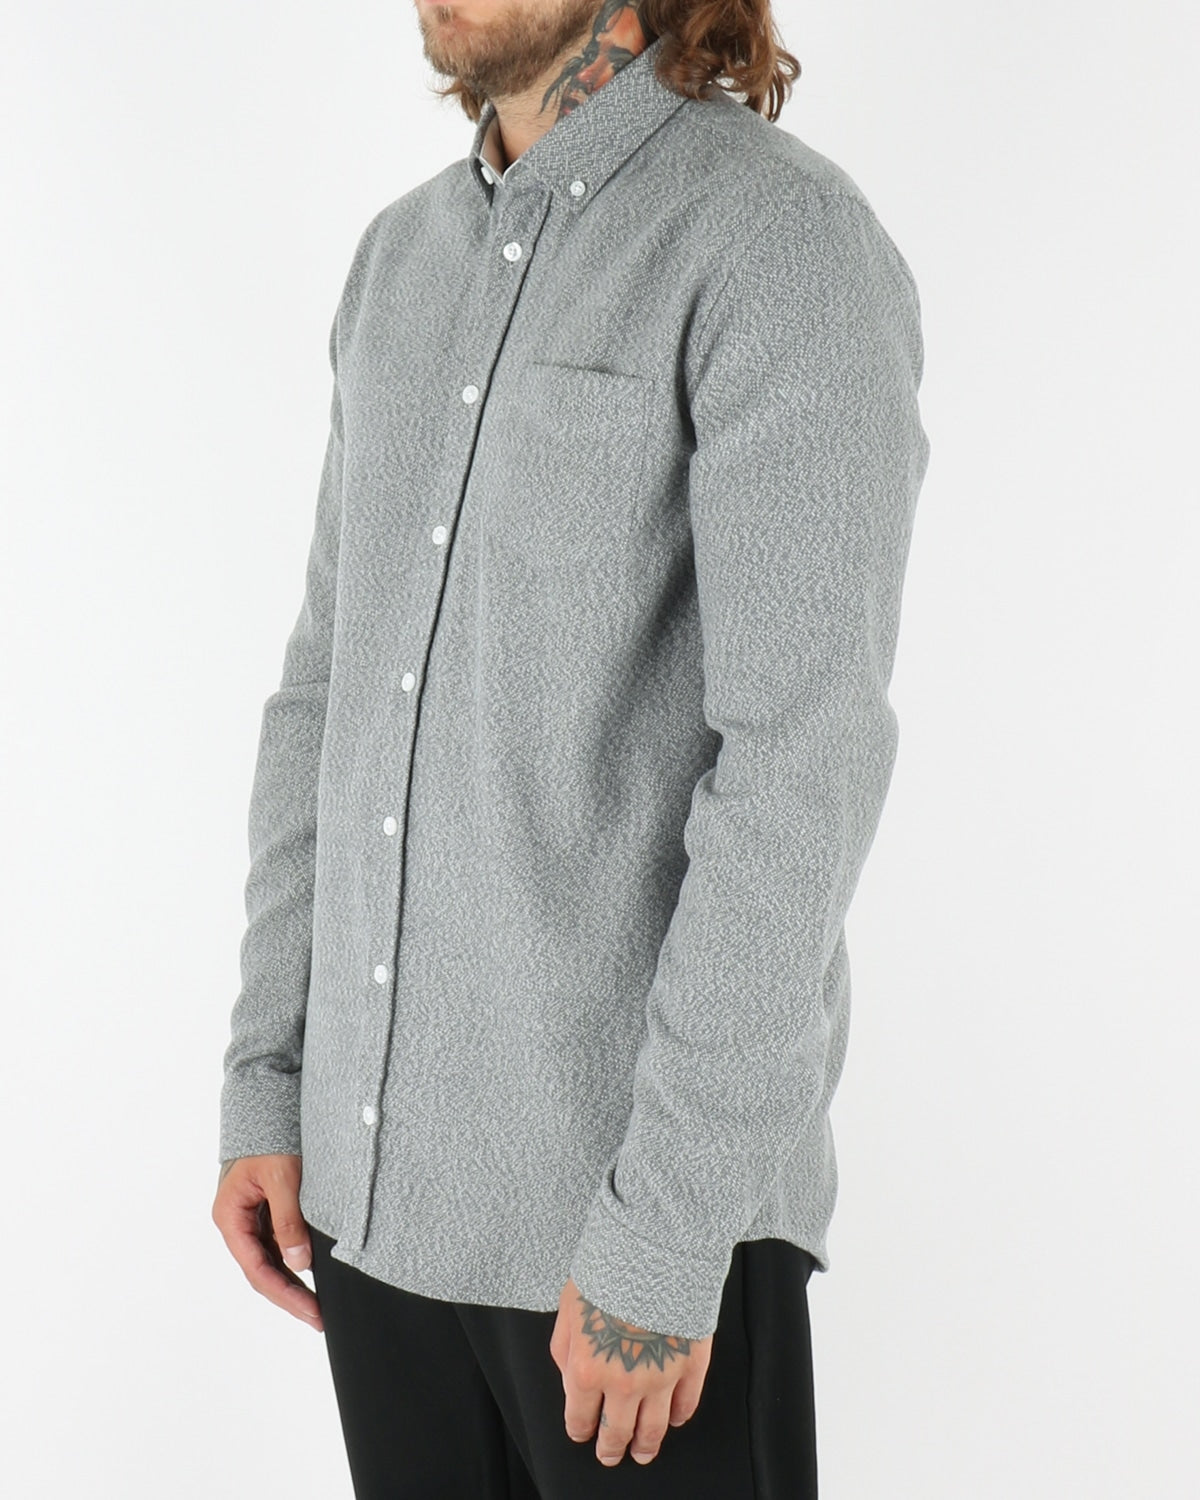 libertine libertine_hunter draper_shirt_grey_view_2_3